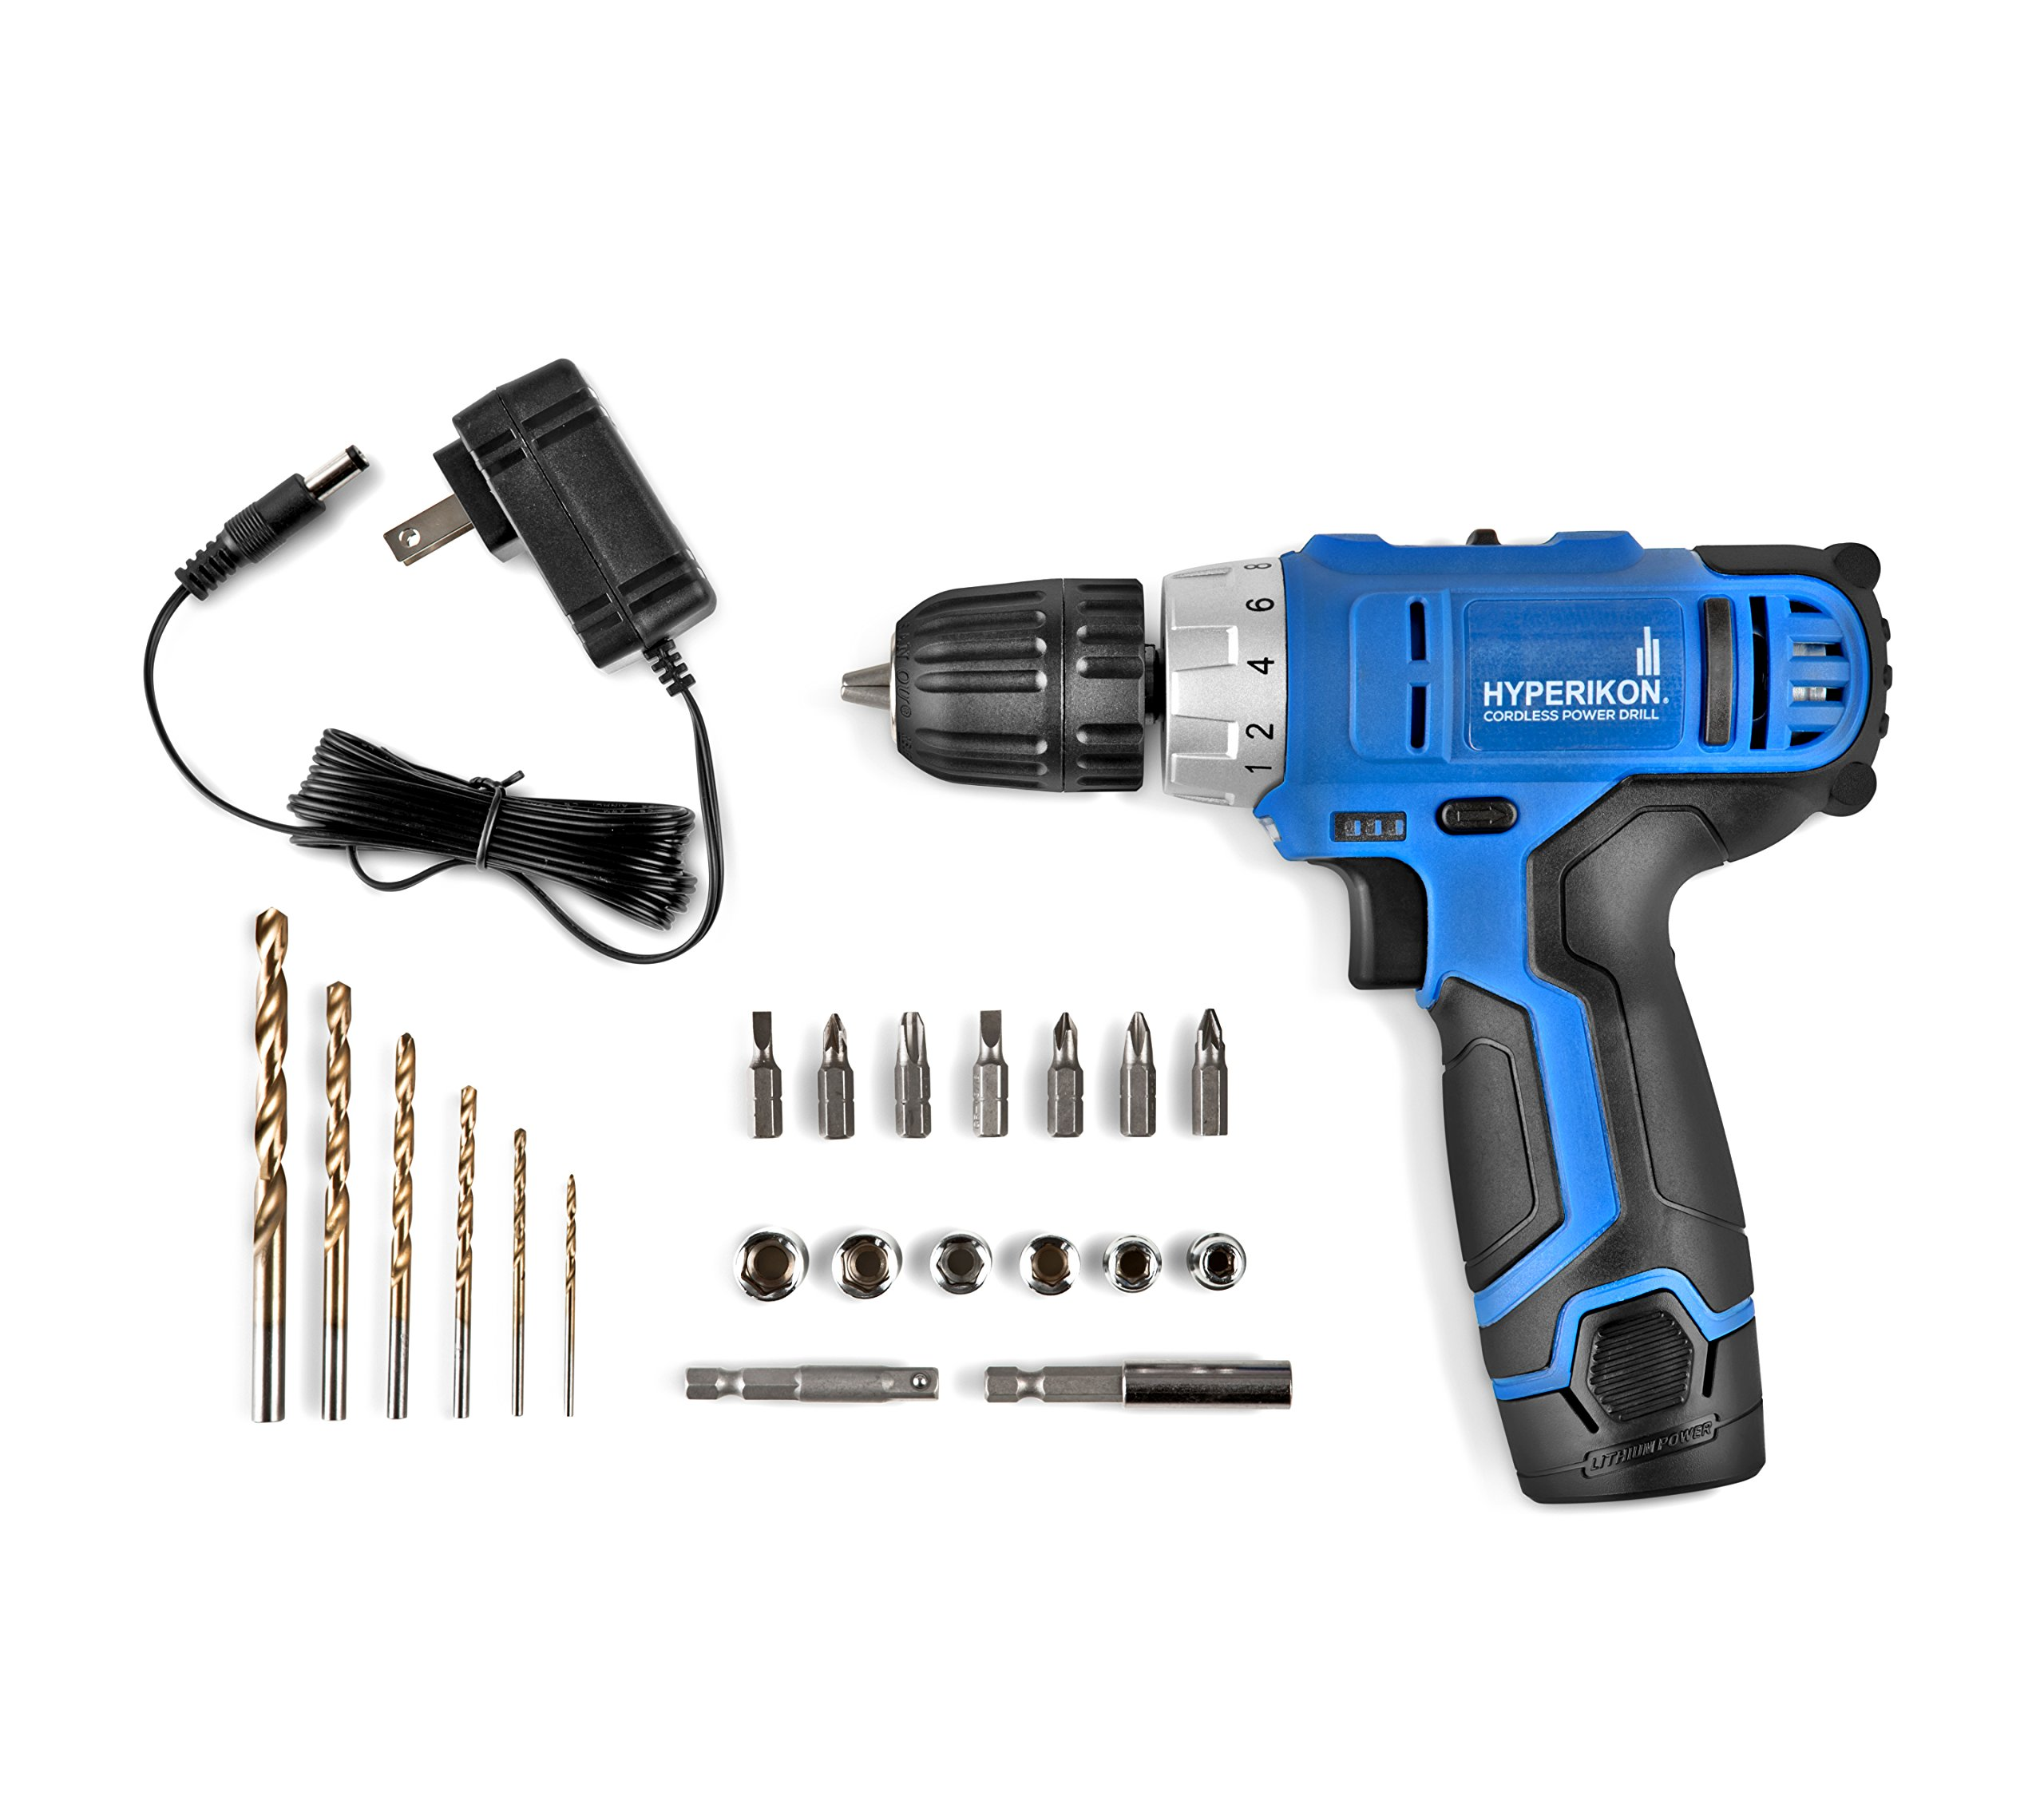 Hyperikon Electric Power Drill Lithium 12V with Driver Set and Project Kit, 3/8 Keyless Chuck Small Cordless Drill by Hyperikon